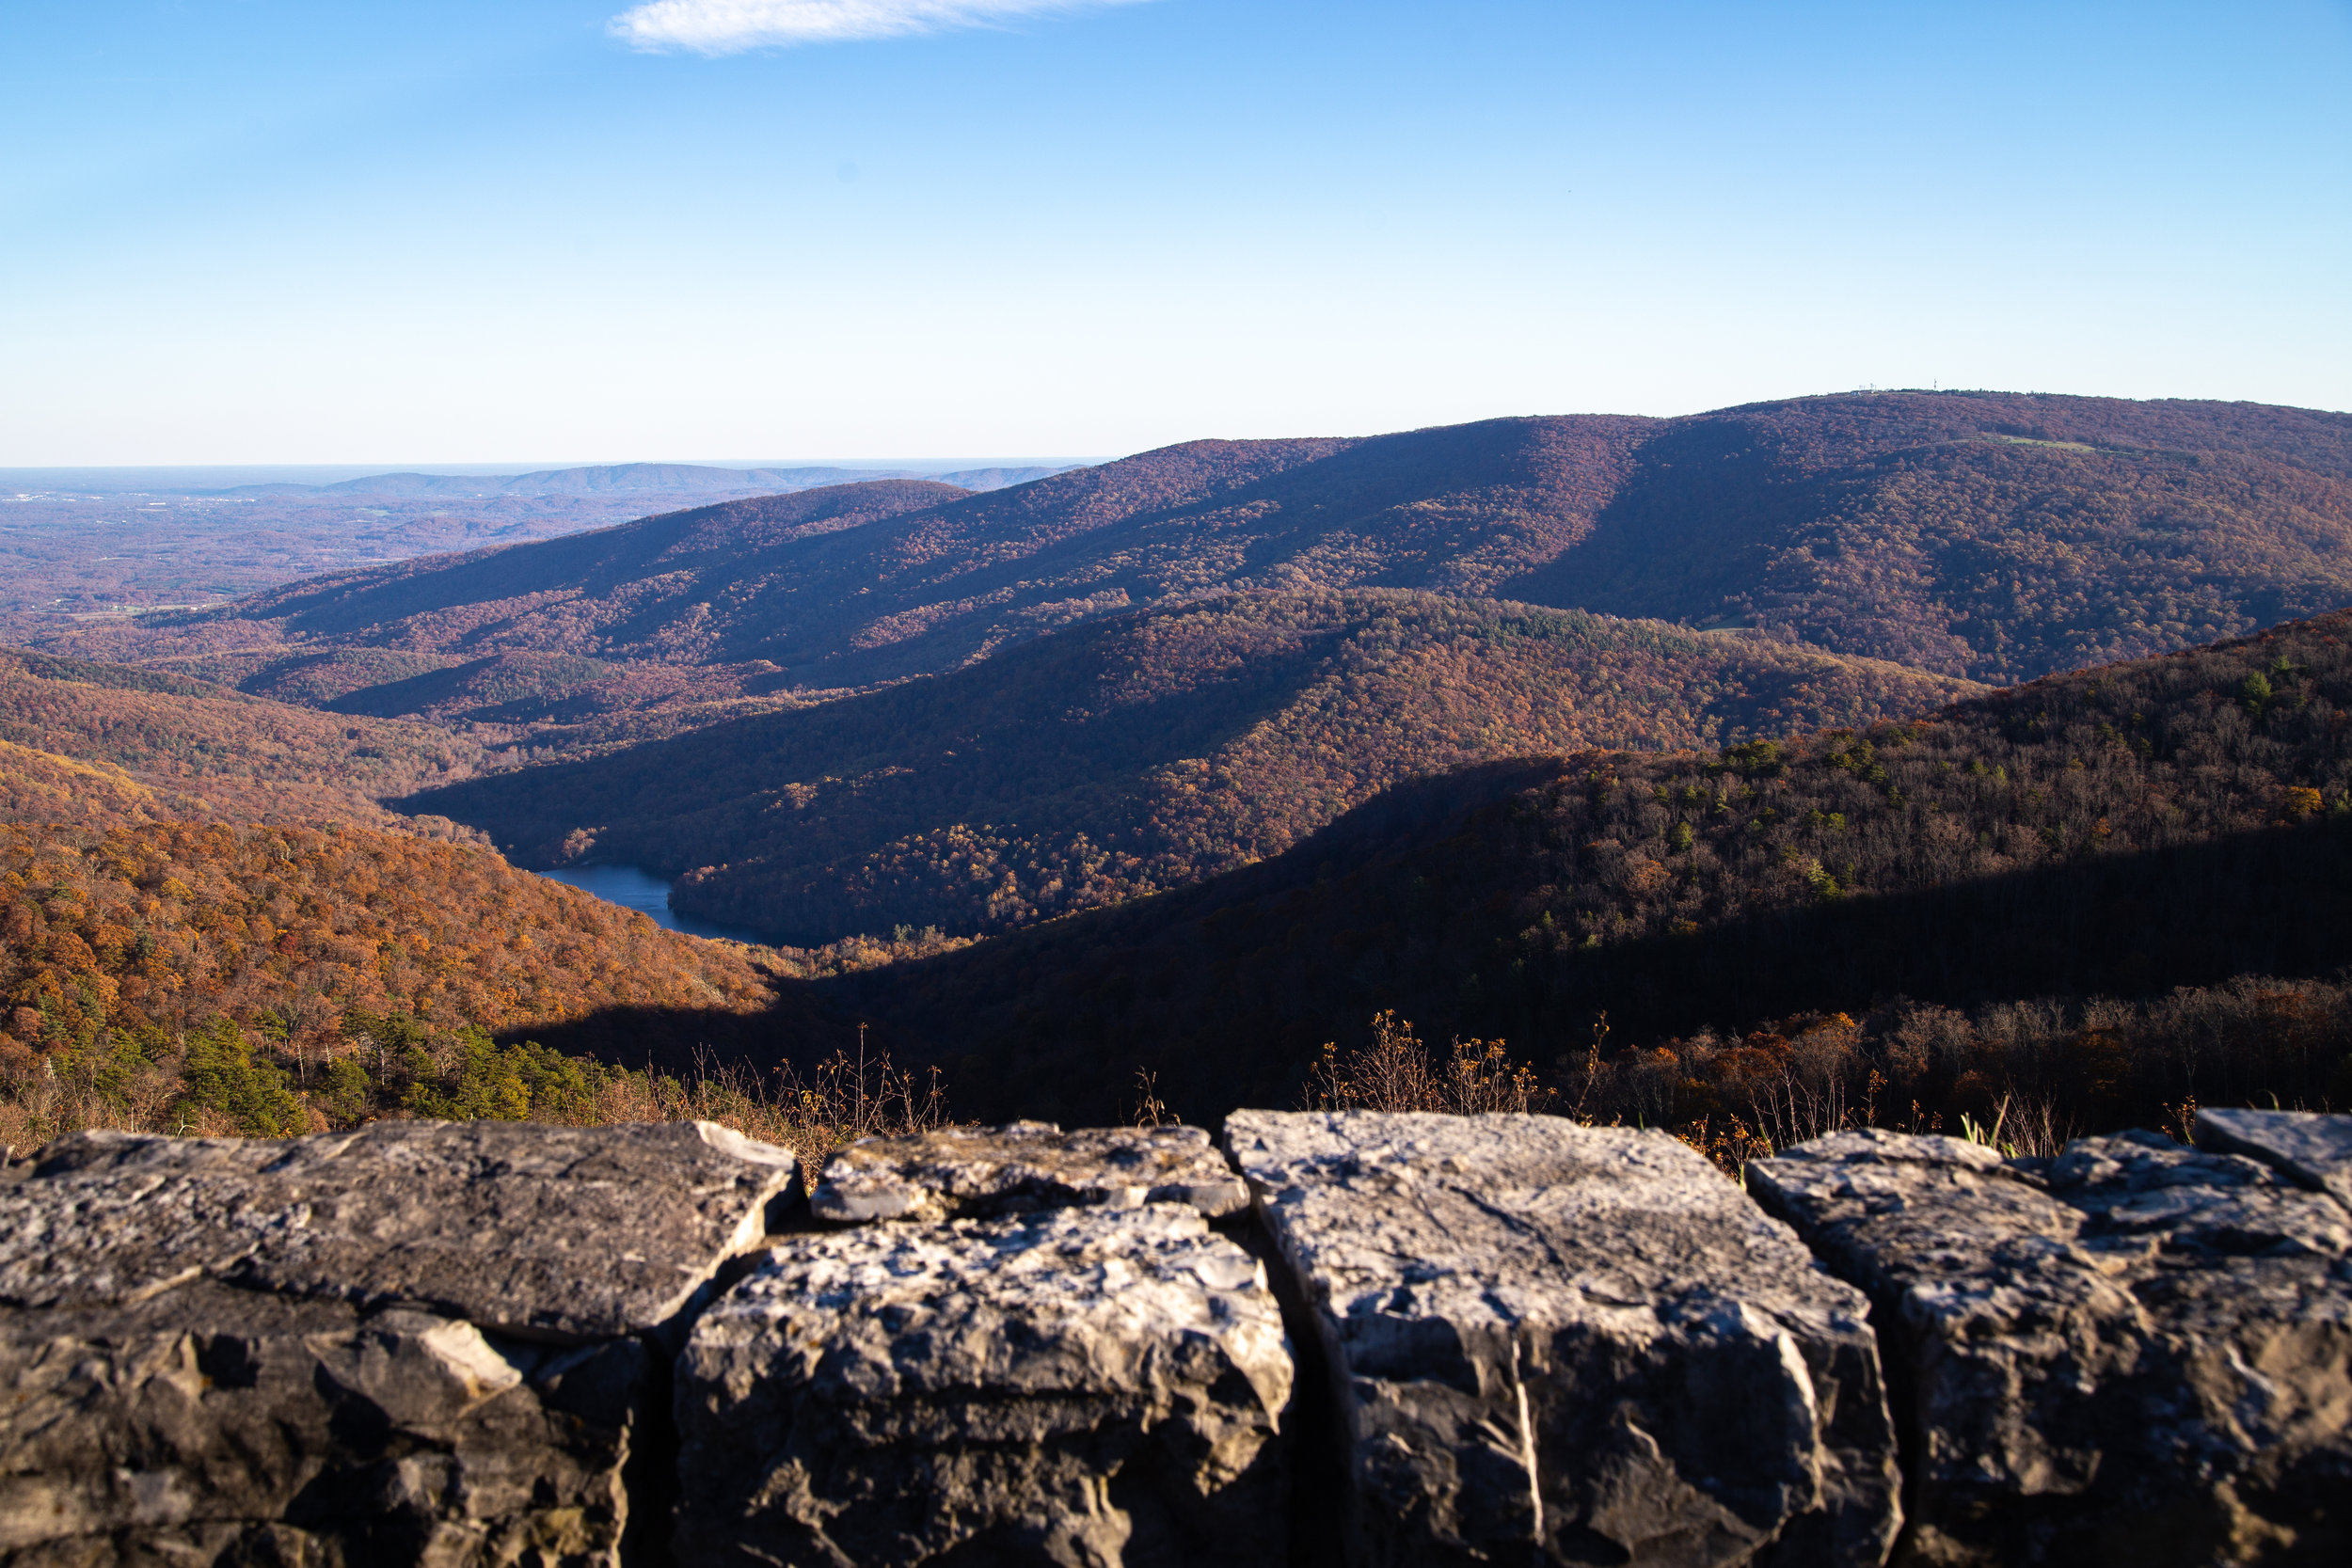 Shenandoah-National-Park-blue-ridge-parkway-day-mountains-afternoon-haze-layers-distance-texture-trees-fall-rock-ledge-shadows